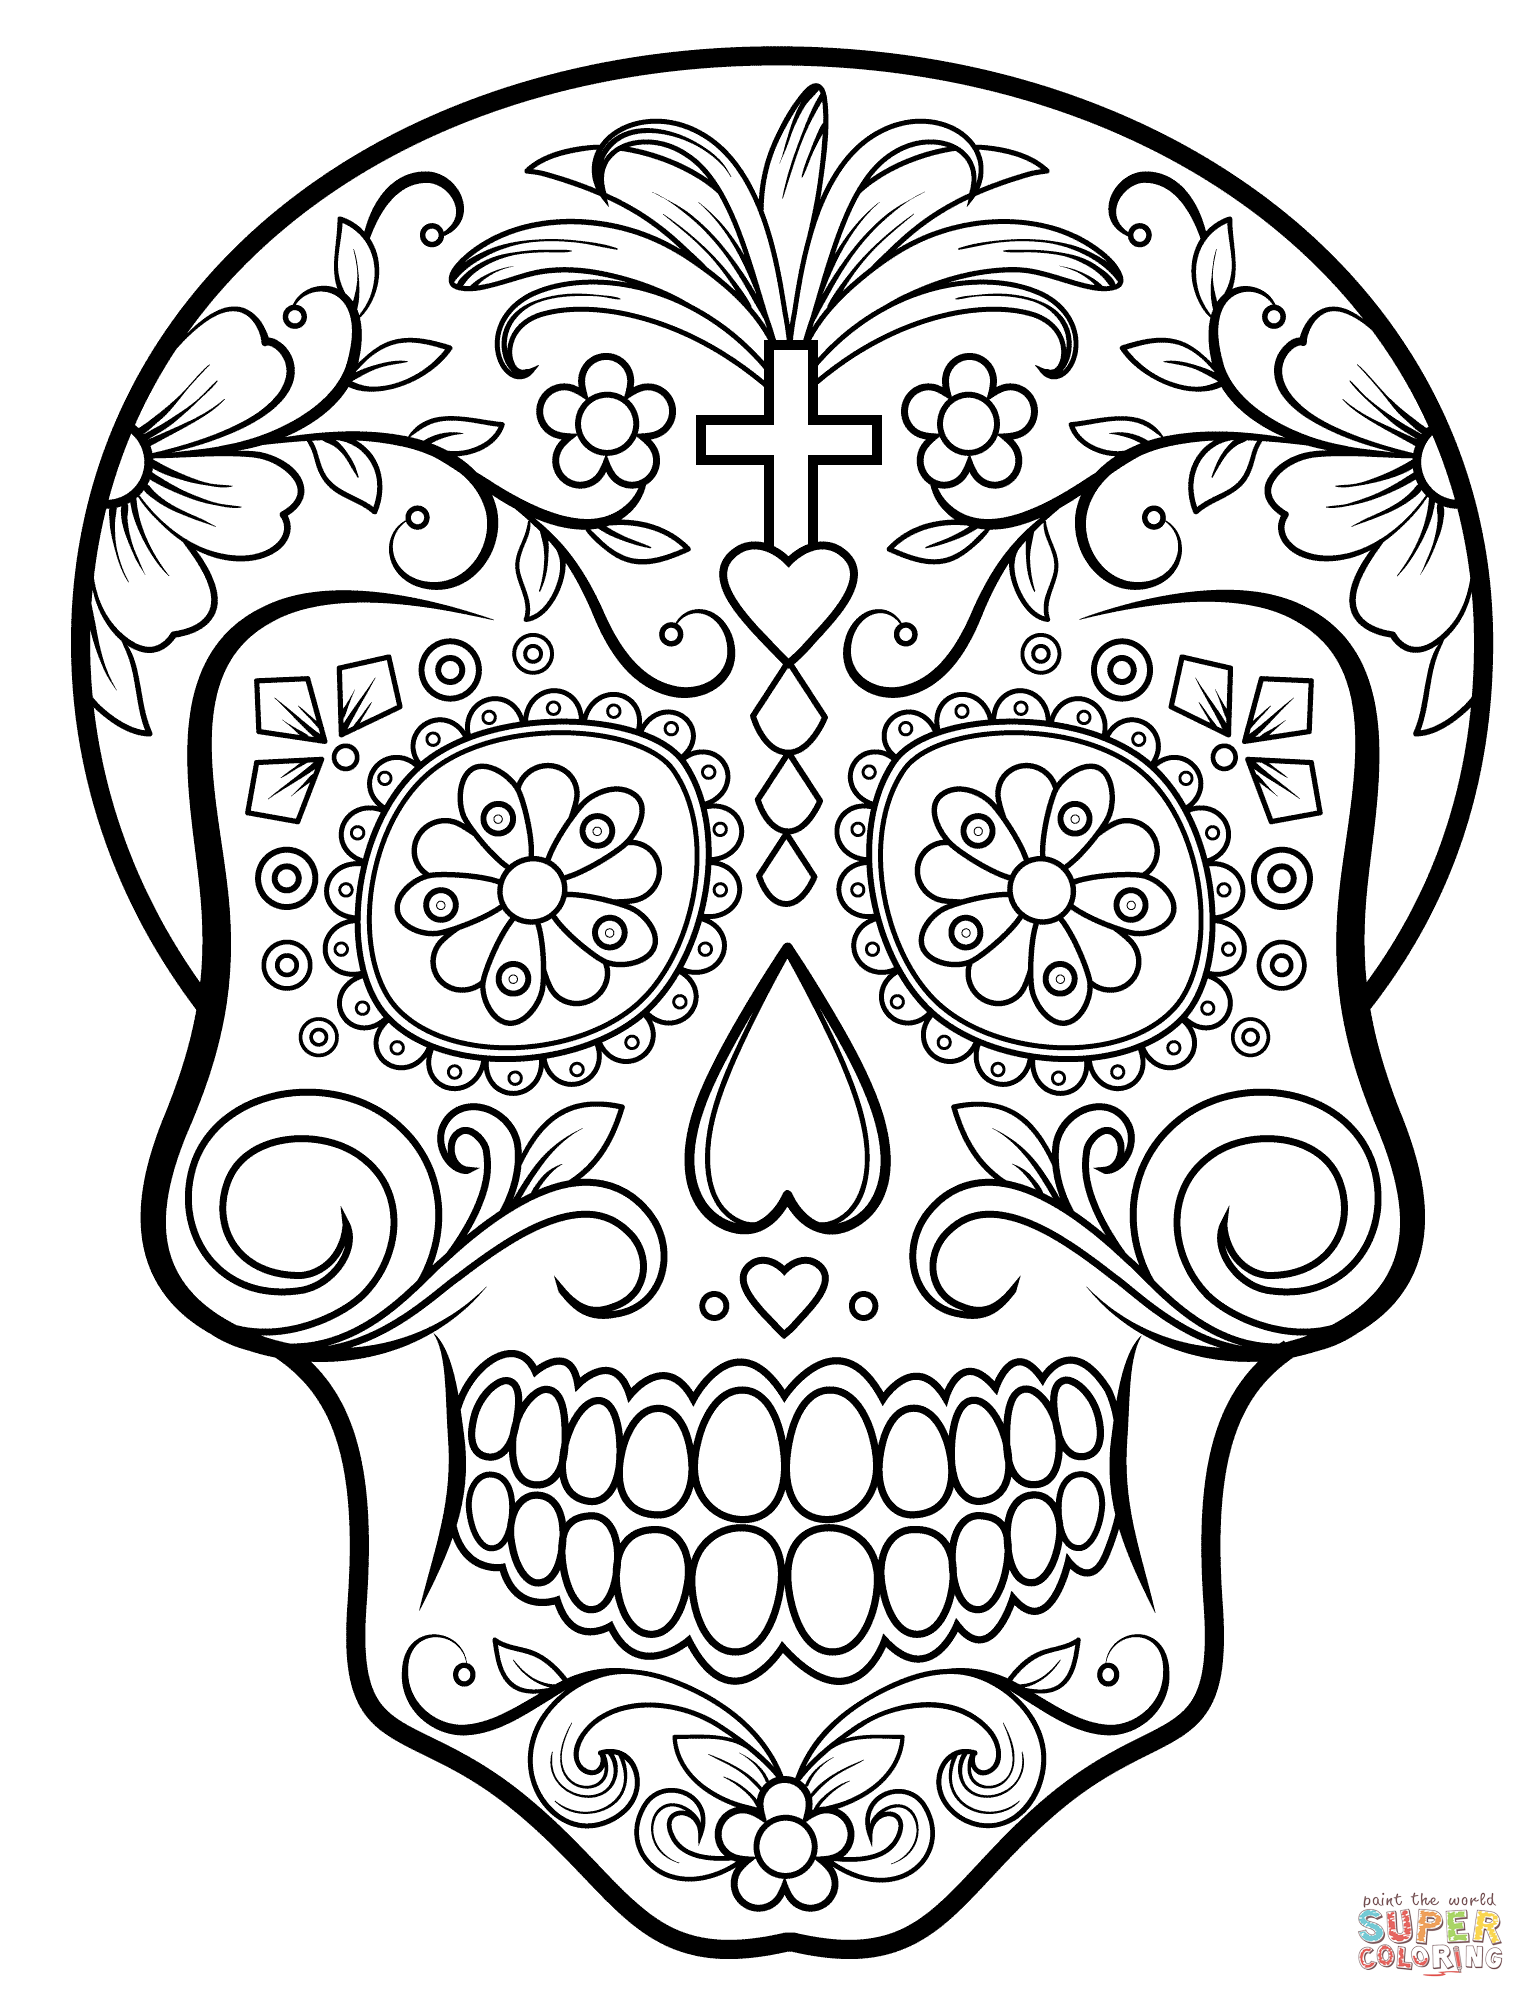 coloring skull day of the dead skull coloring pages for adults coloring dead skull of day the